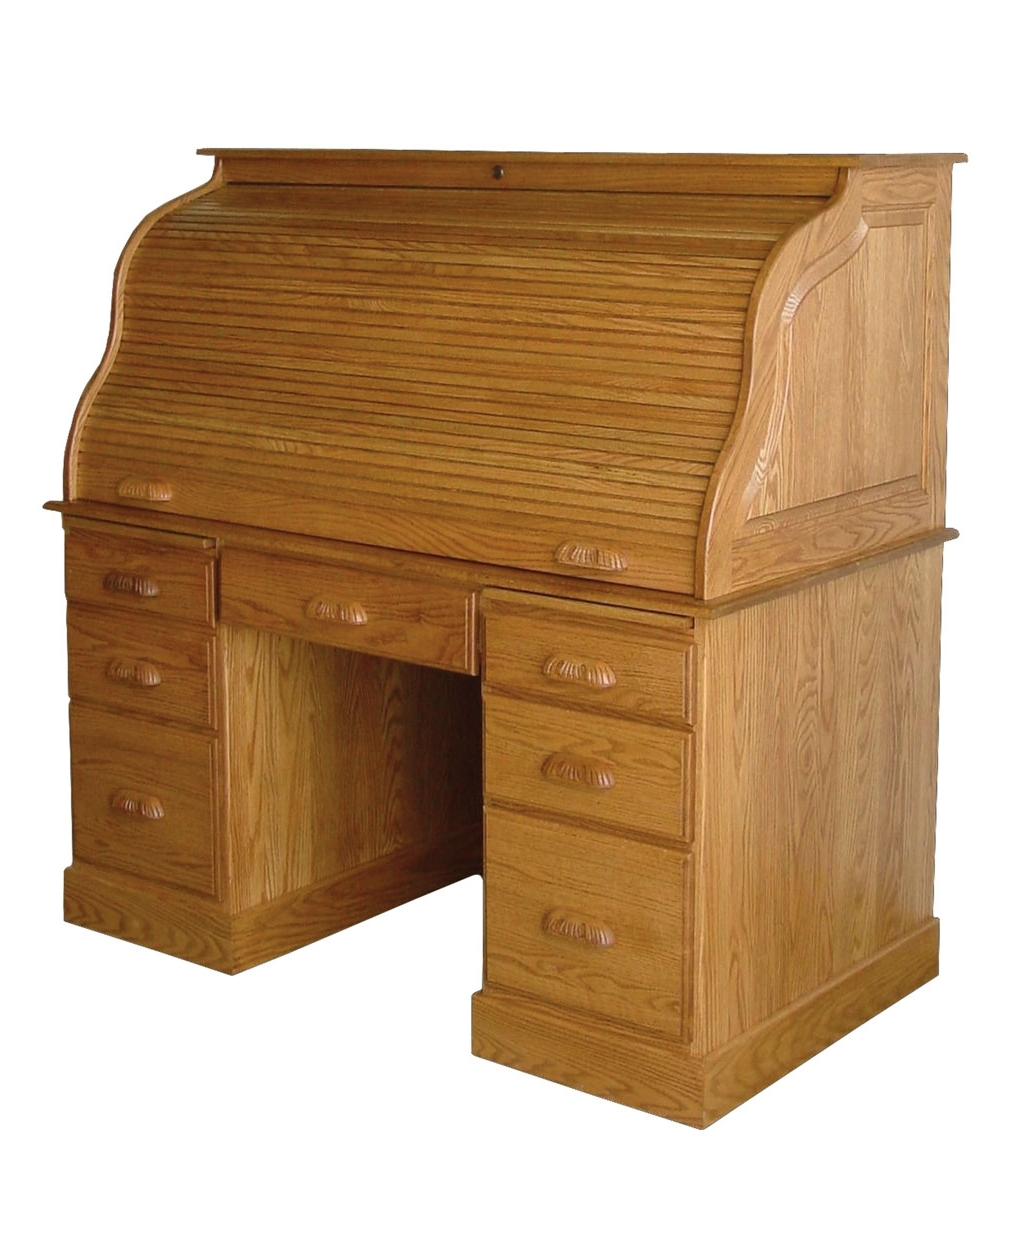 Popular Roll Top Computer Desks Regarding Computer Rolltop Desk – Amish Direct Furniture (View 7 of 20)